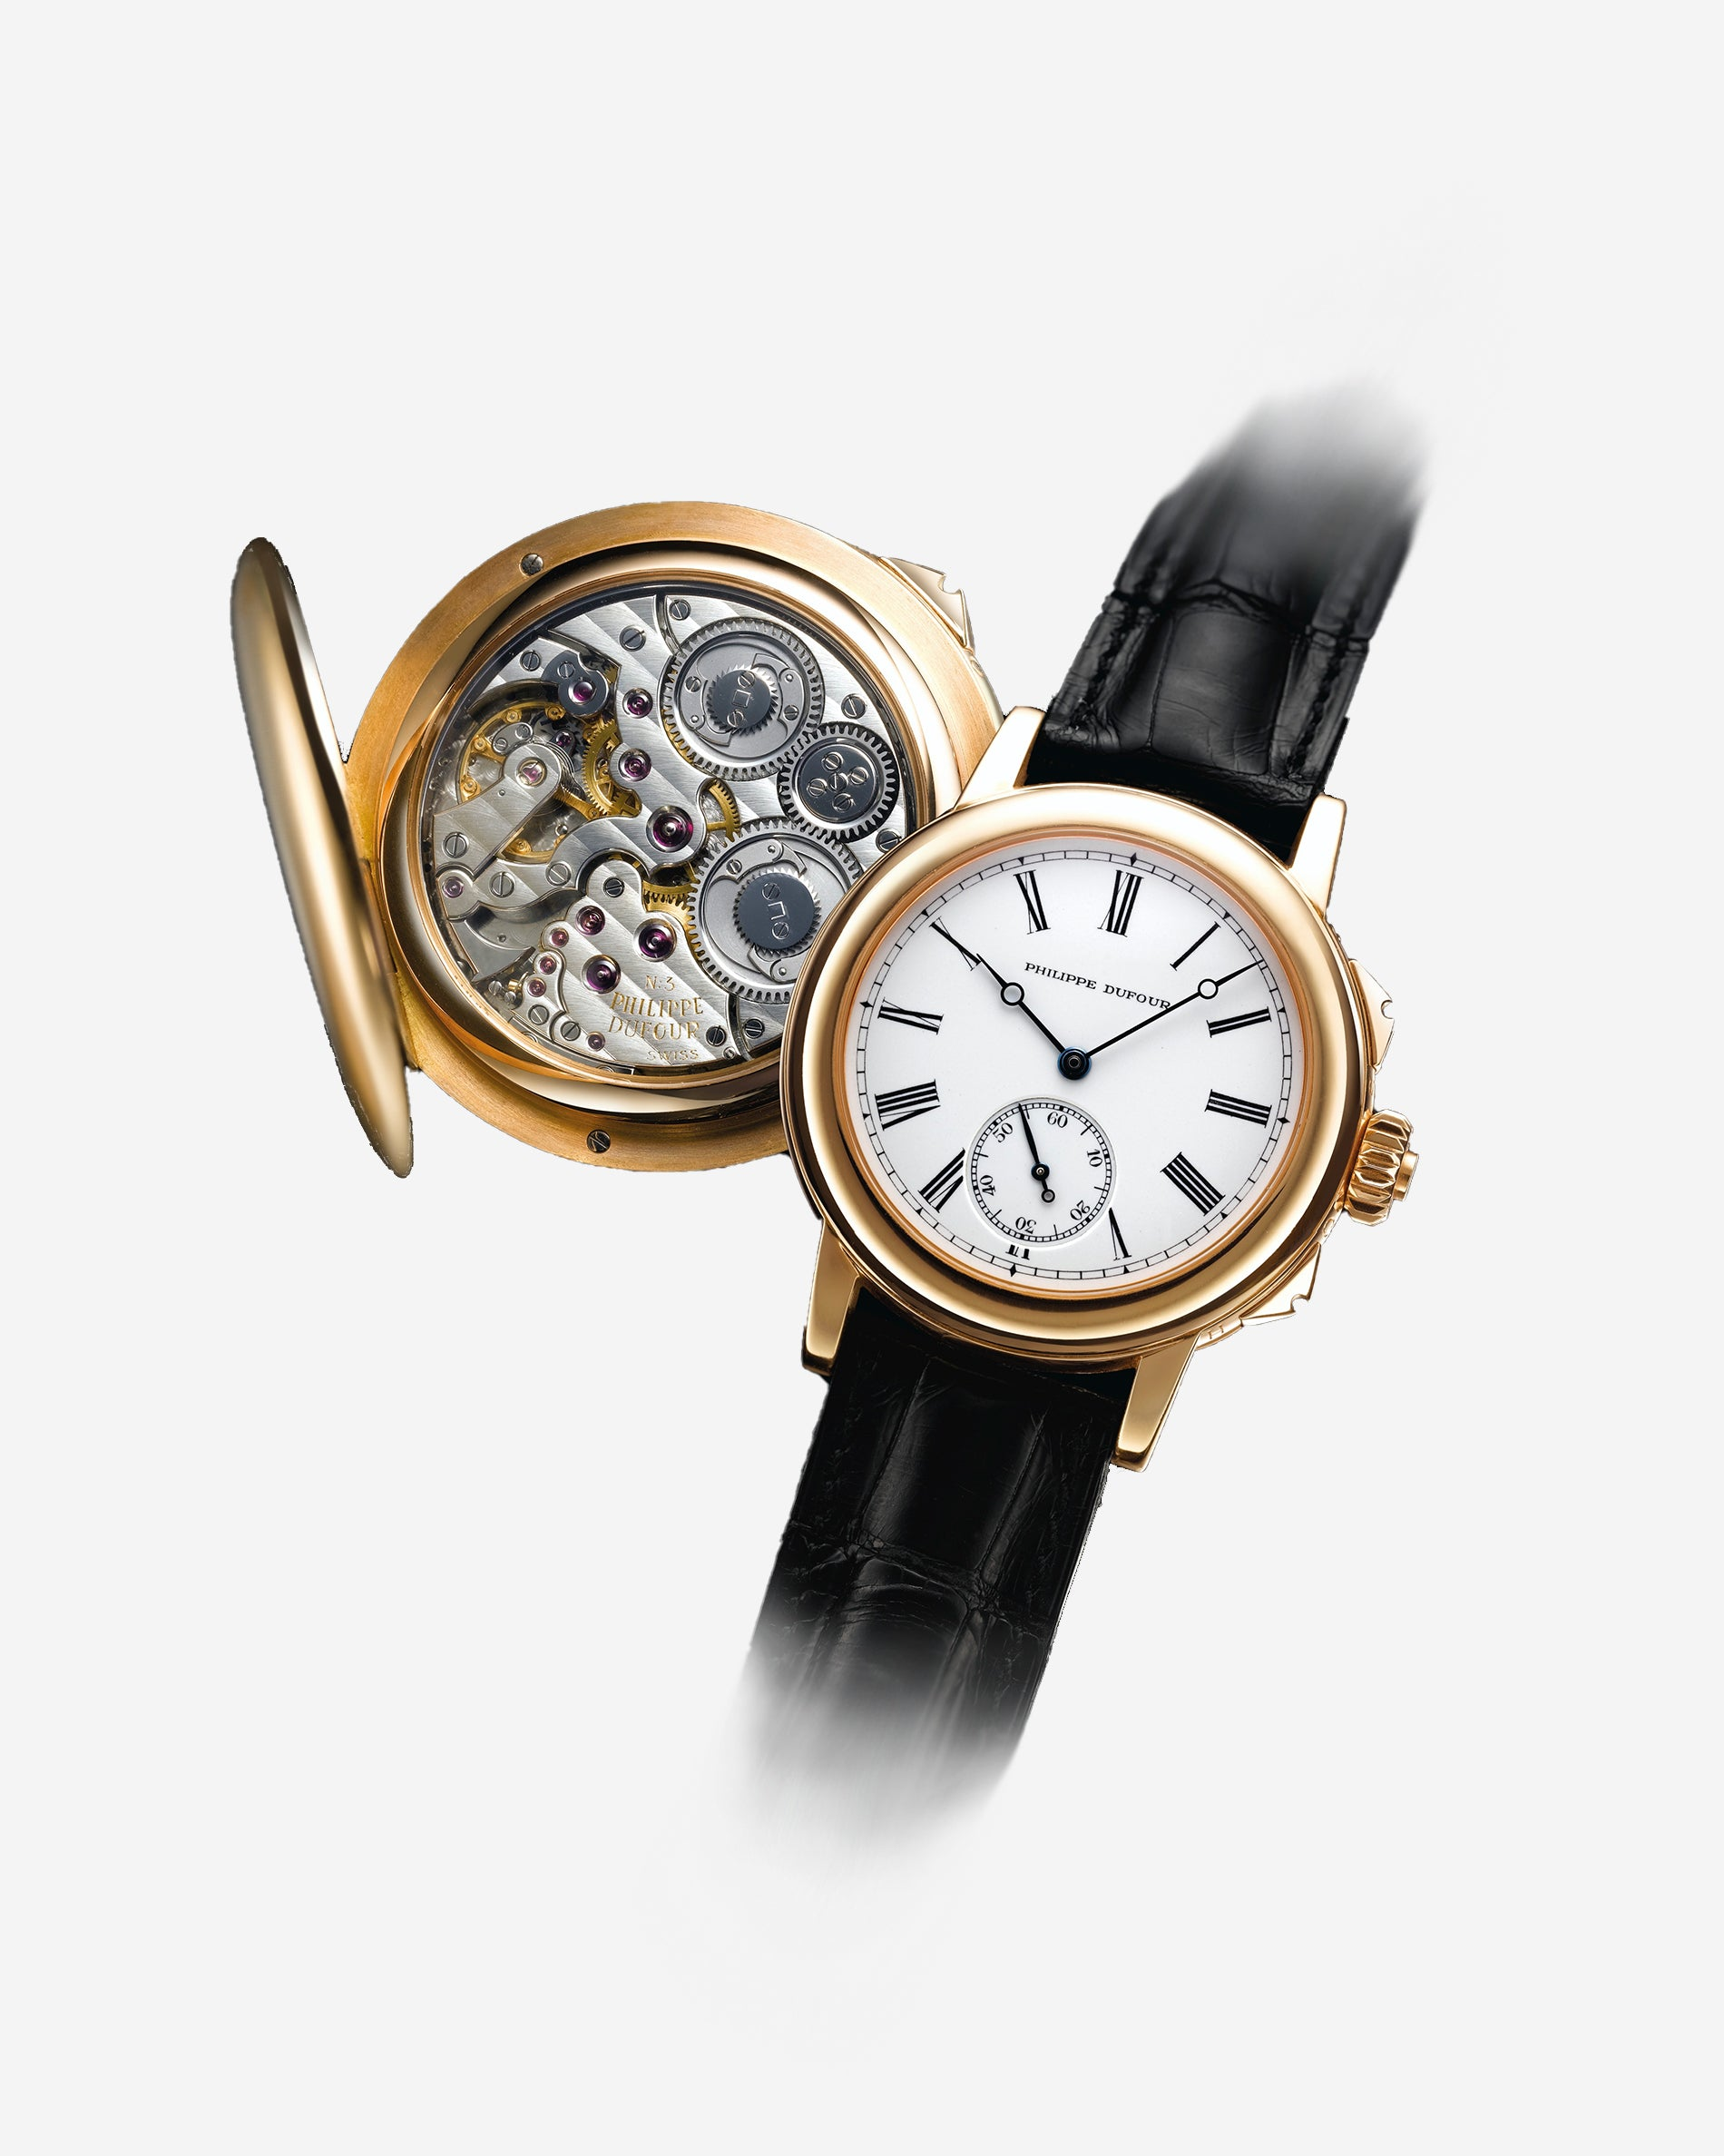 Philippe Dufour Grand Sonnerie minute-repeater wristwatch in yellow gold from A Collected Man London